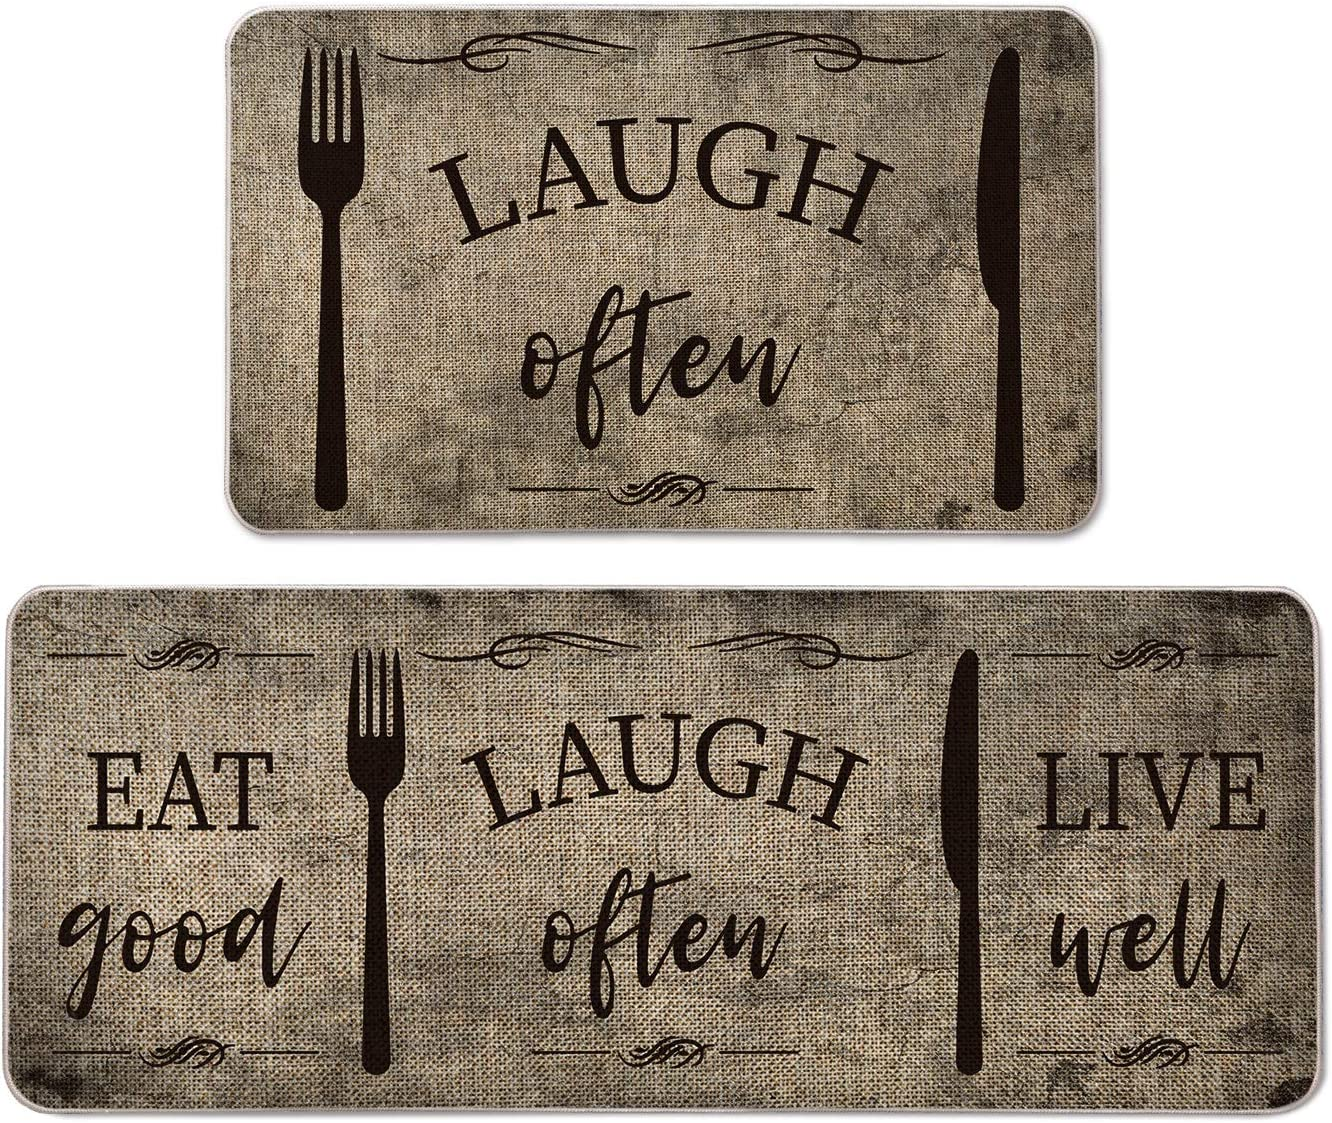 Artoid Mode Eat Good Laugh Often Live Well Decorative Kitchen Mats Set of 2, Seasonal Fork and Knife Holiday Party Low-Profile Floor Mat for Home Kitchen - 17x29 and 17x47 Inch